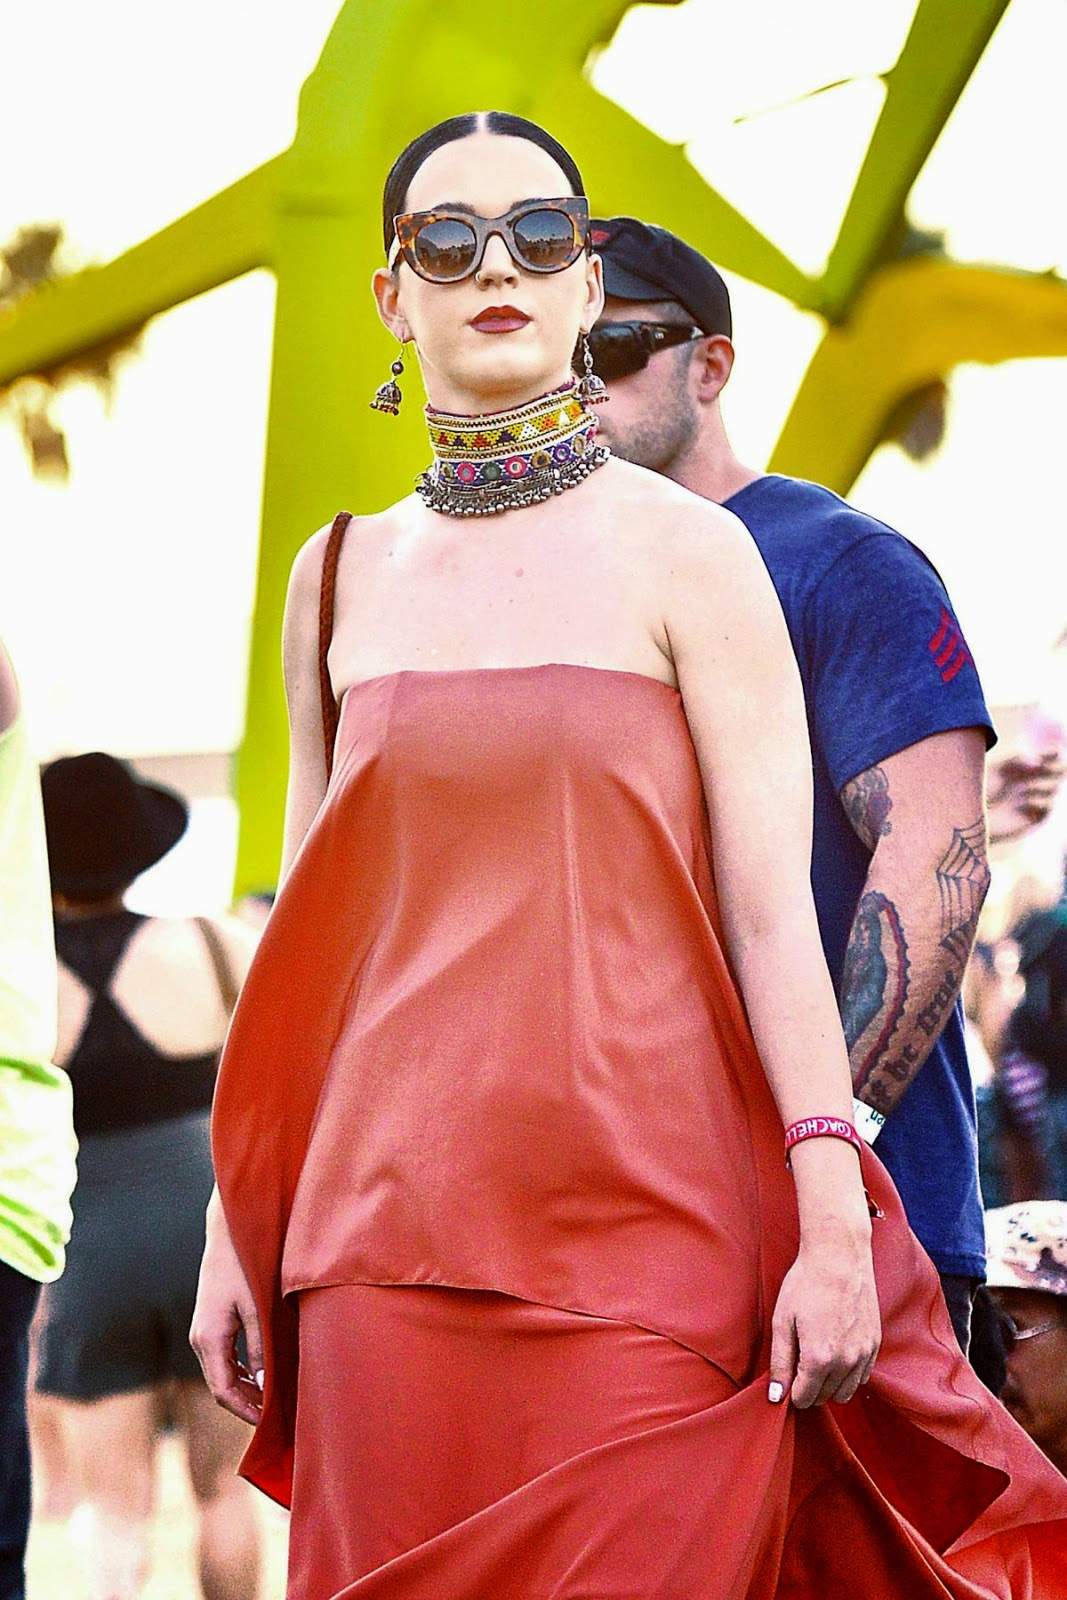 Musician, Actress @ Katy Perry spotted at Coachella with friends in Indio